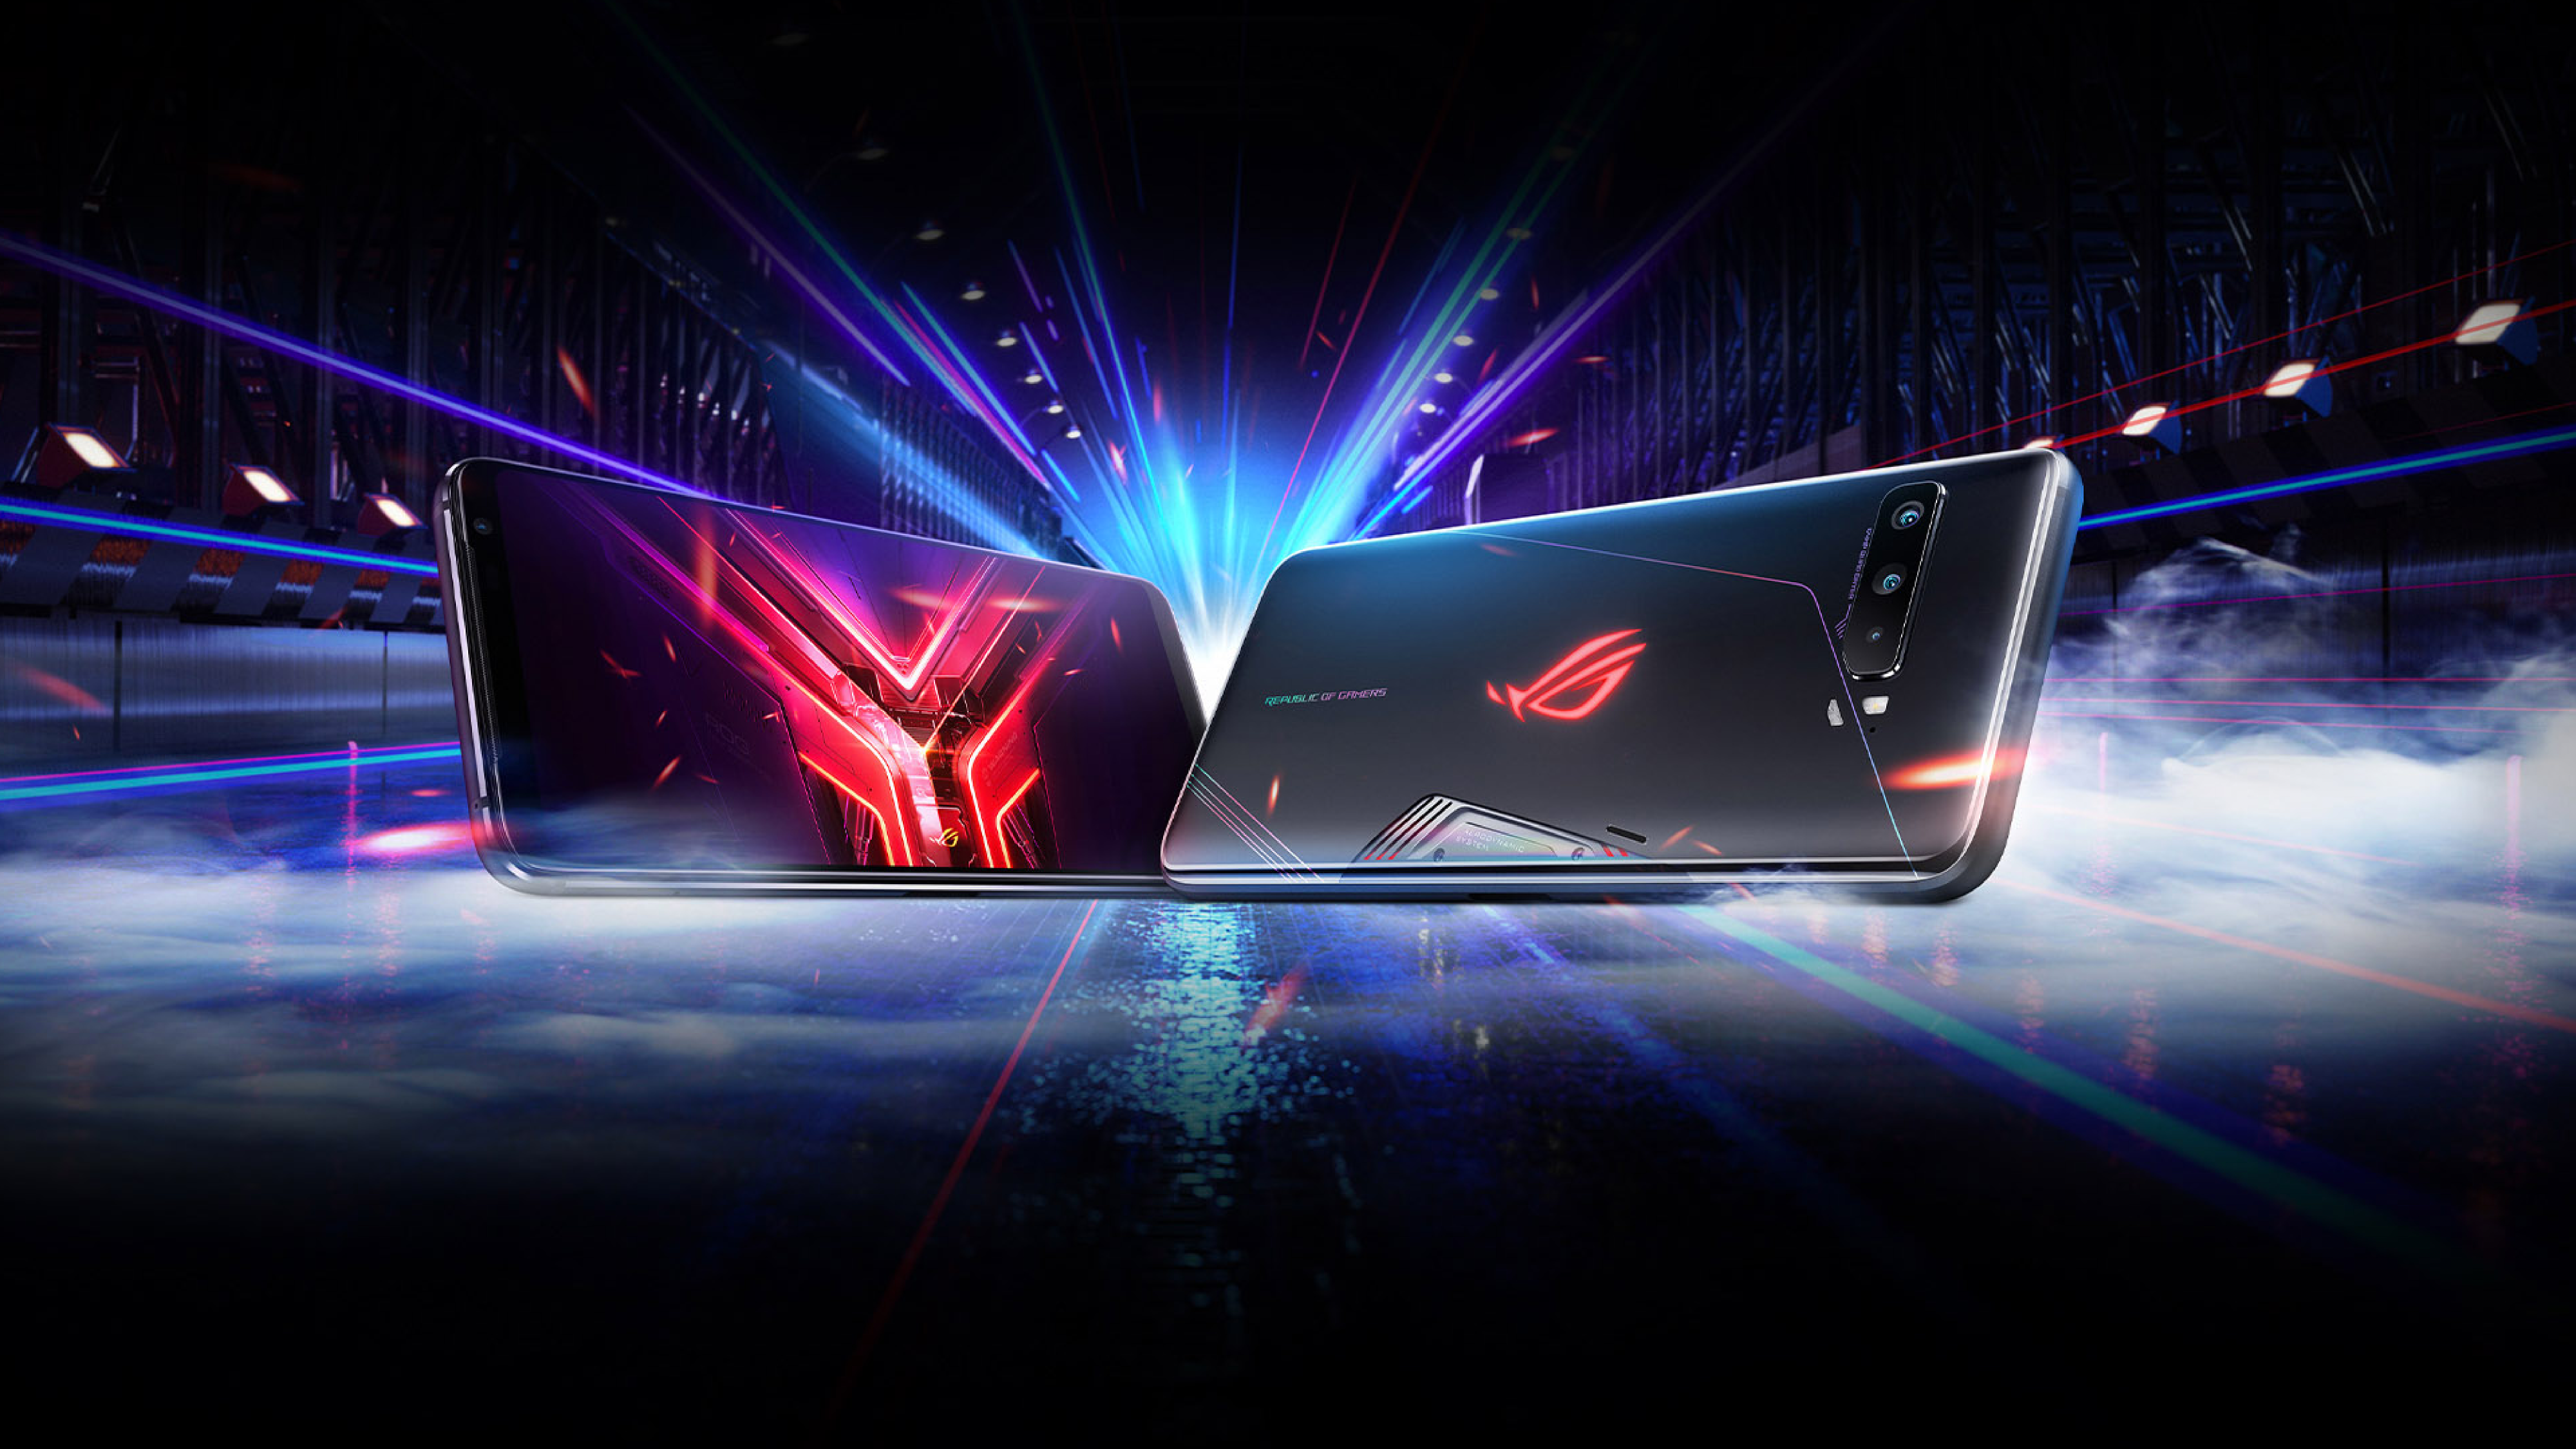 Download The Asus Rog Phone 3 S Live Wallpapers For Your Phone Right Now